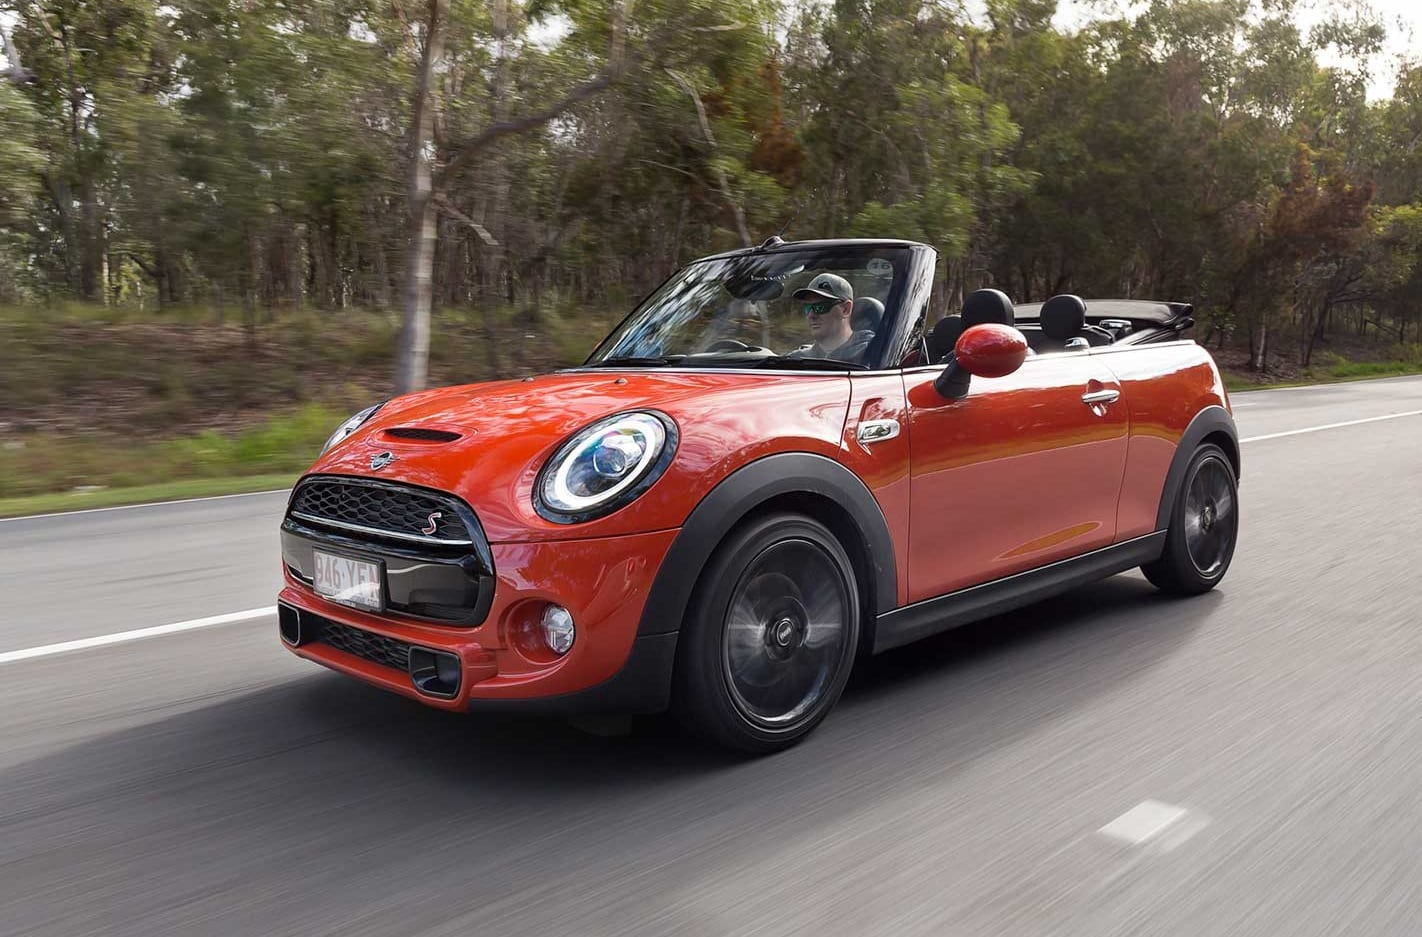 2018 Mini Cooper S Convertible performance review